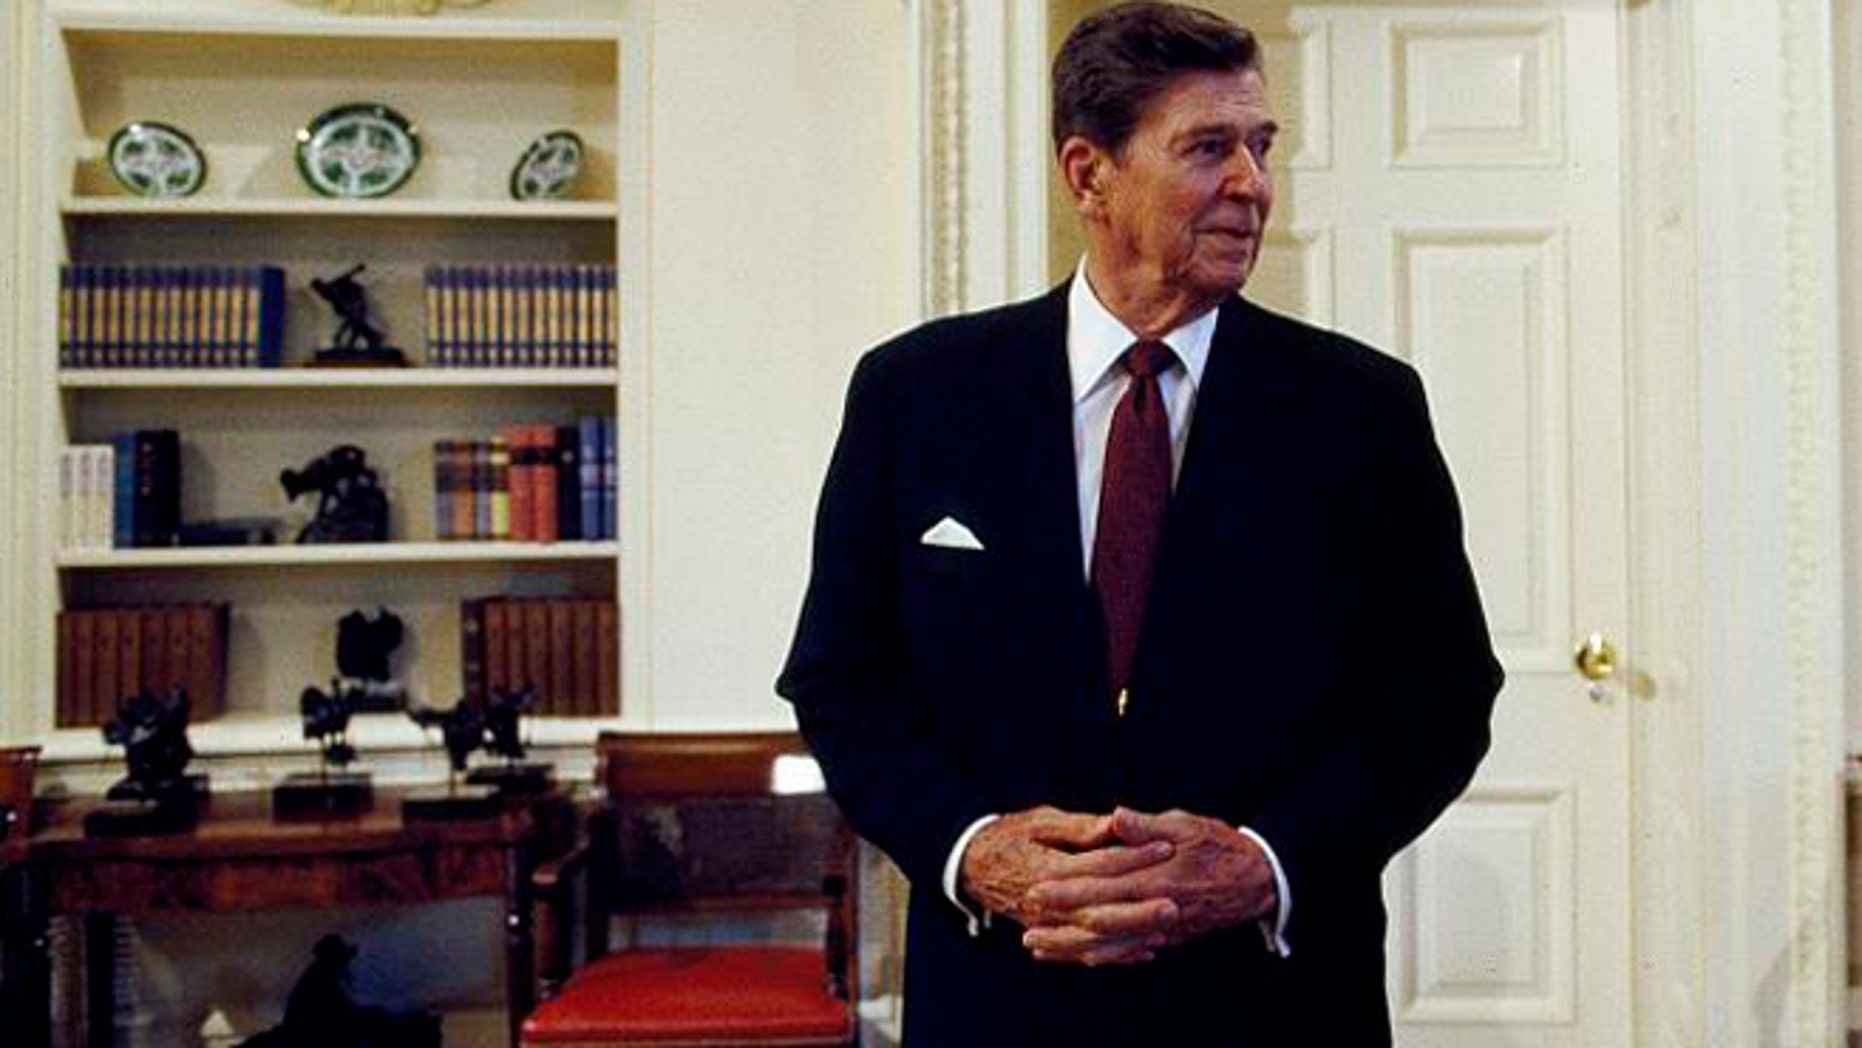 President Ronald Reagan in the Oval Office of the White House during his last term.